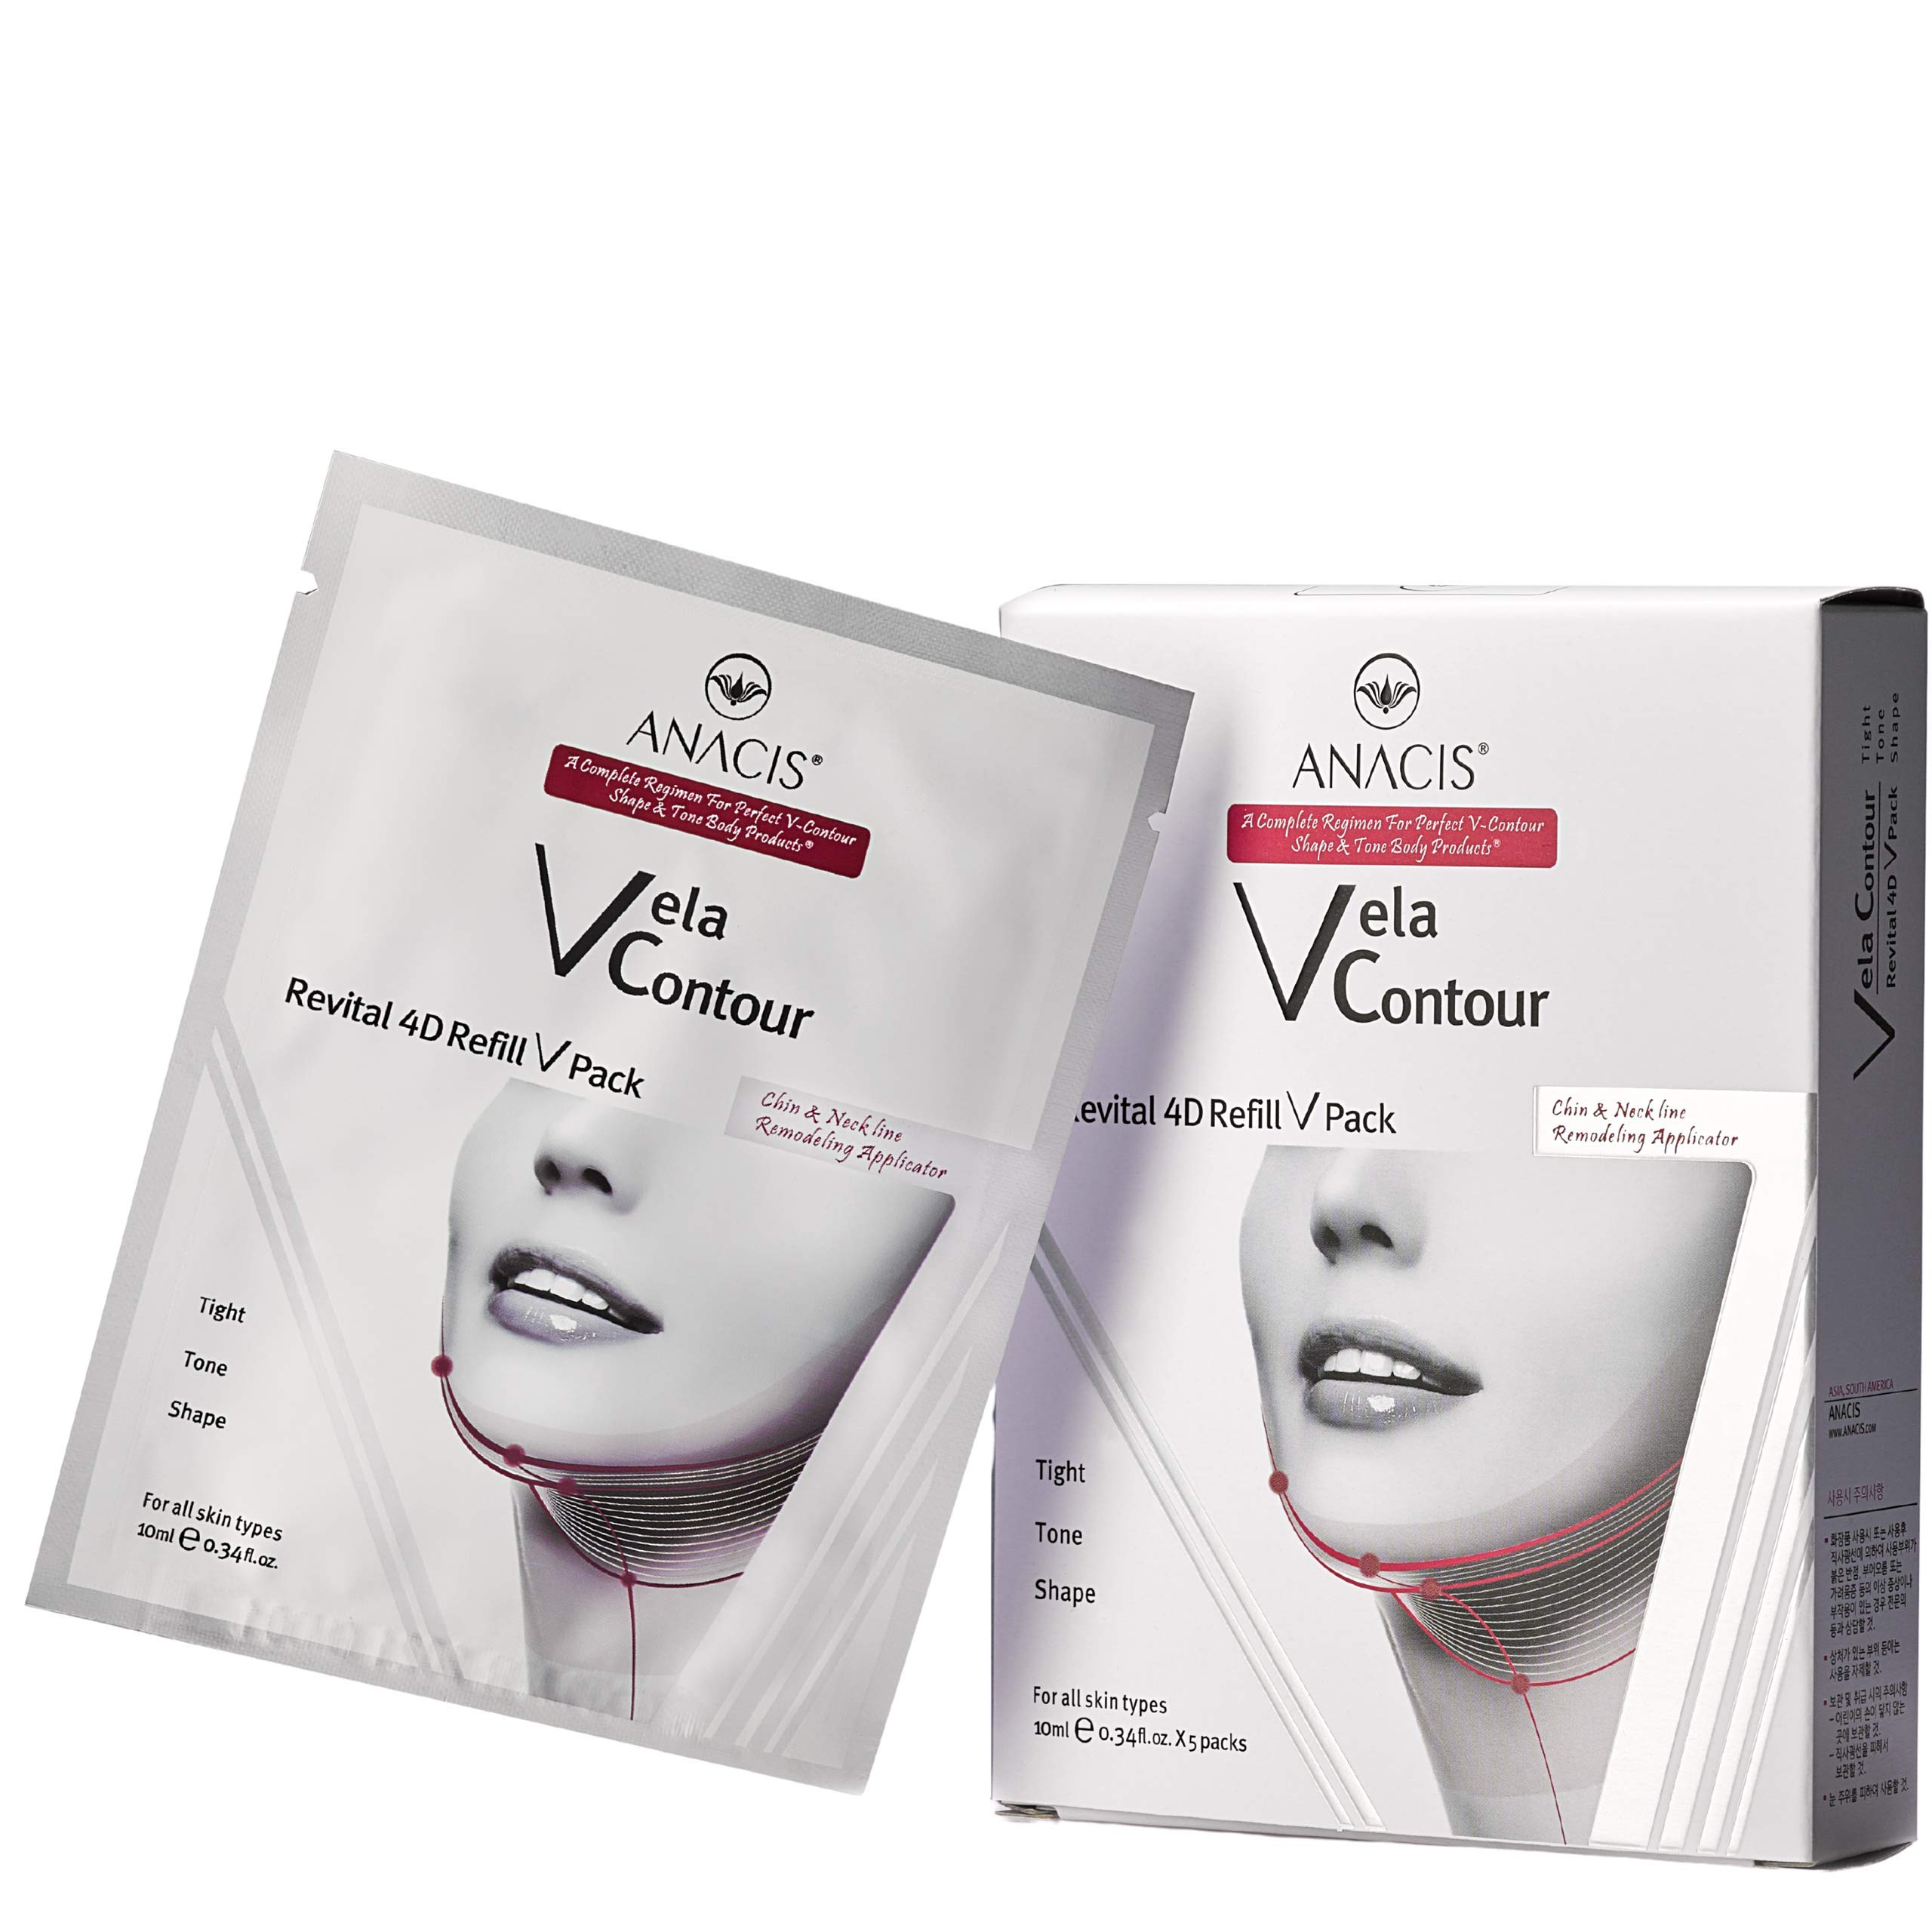 Double Chin Reducer Neck Firming Face Shaping Mask. Made In Korea (5 Masks)